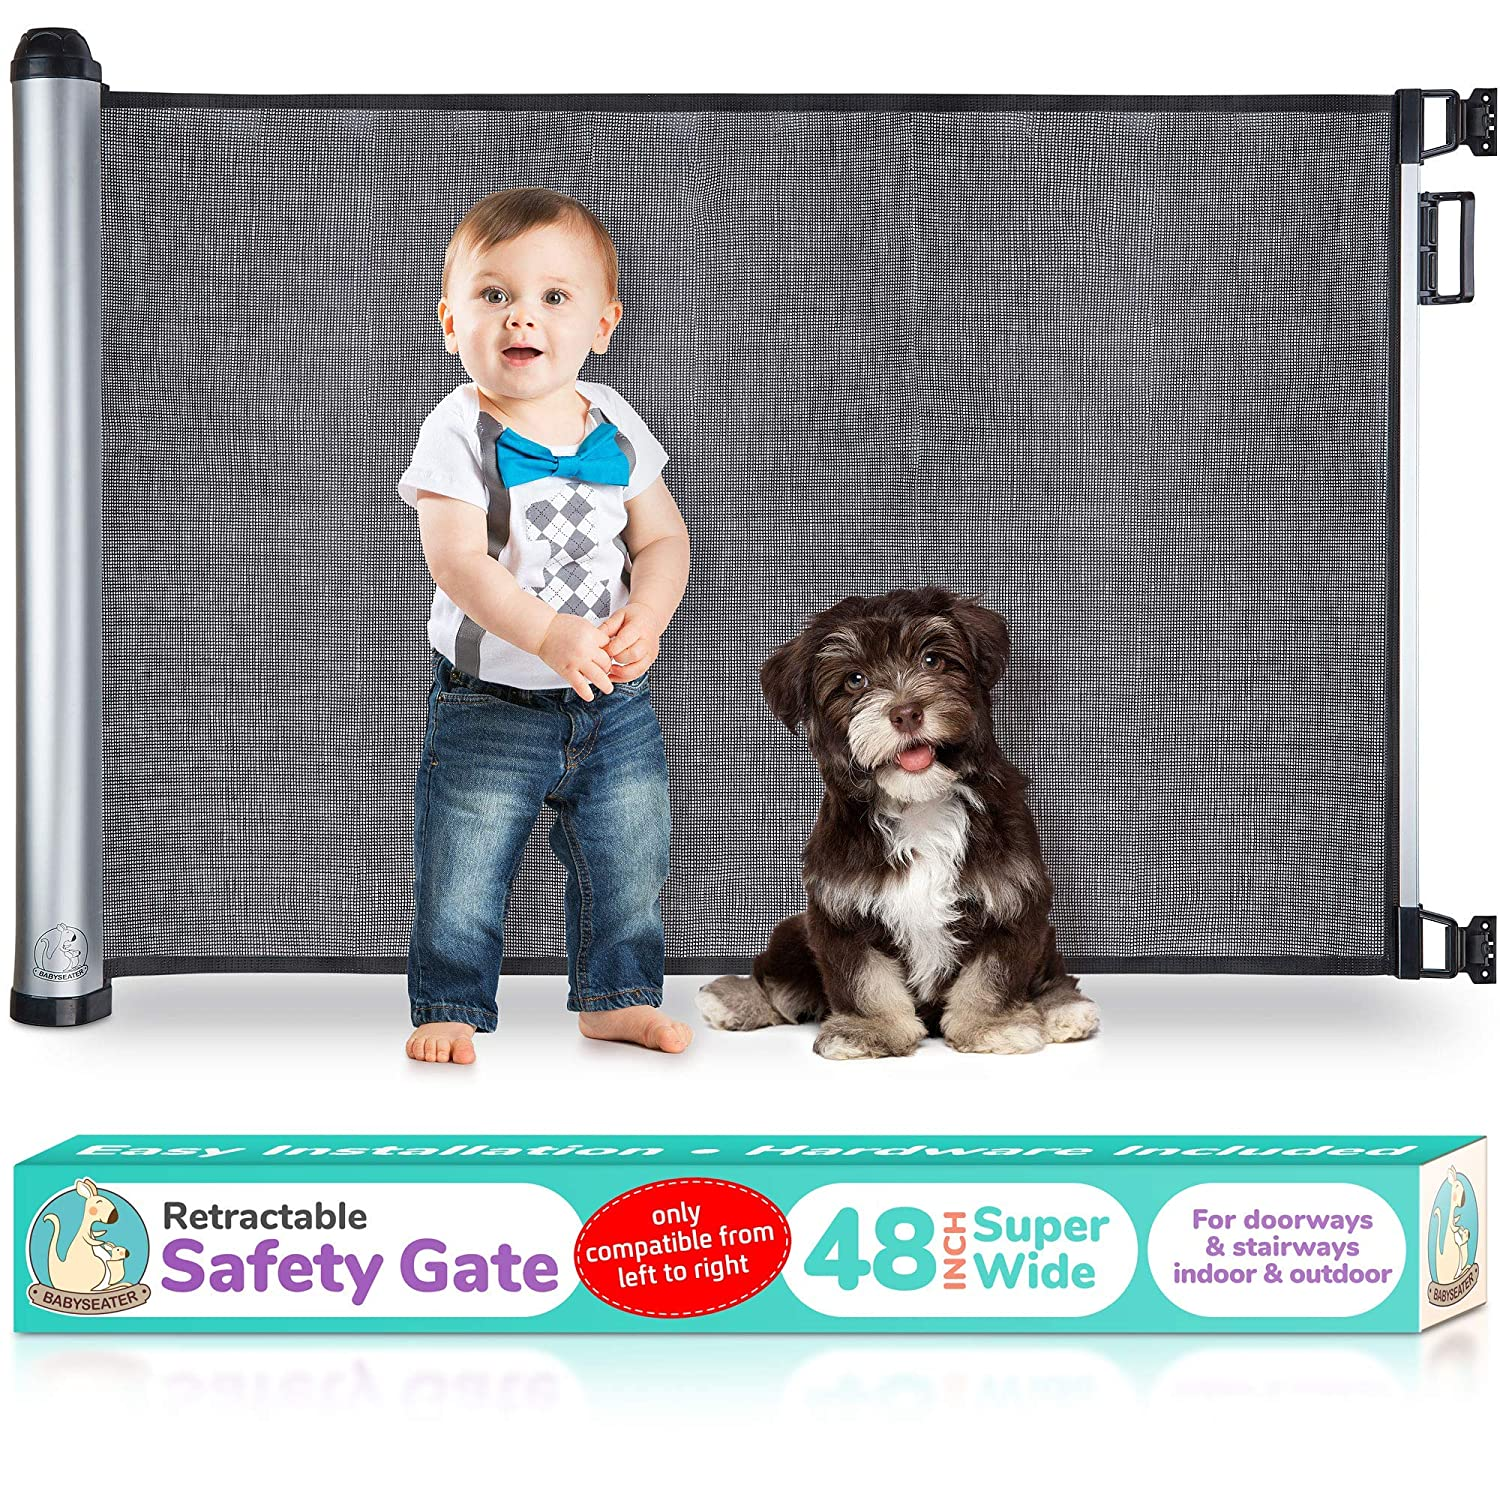 2020 New Retractable Baby Gate – Extra Wide Baby Safety Gate and Pet Gate for Stairs, Doors, and More – Mesh Baby Gate with Easy Latch and Flexible Design Fits Most Spaces